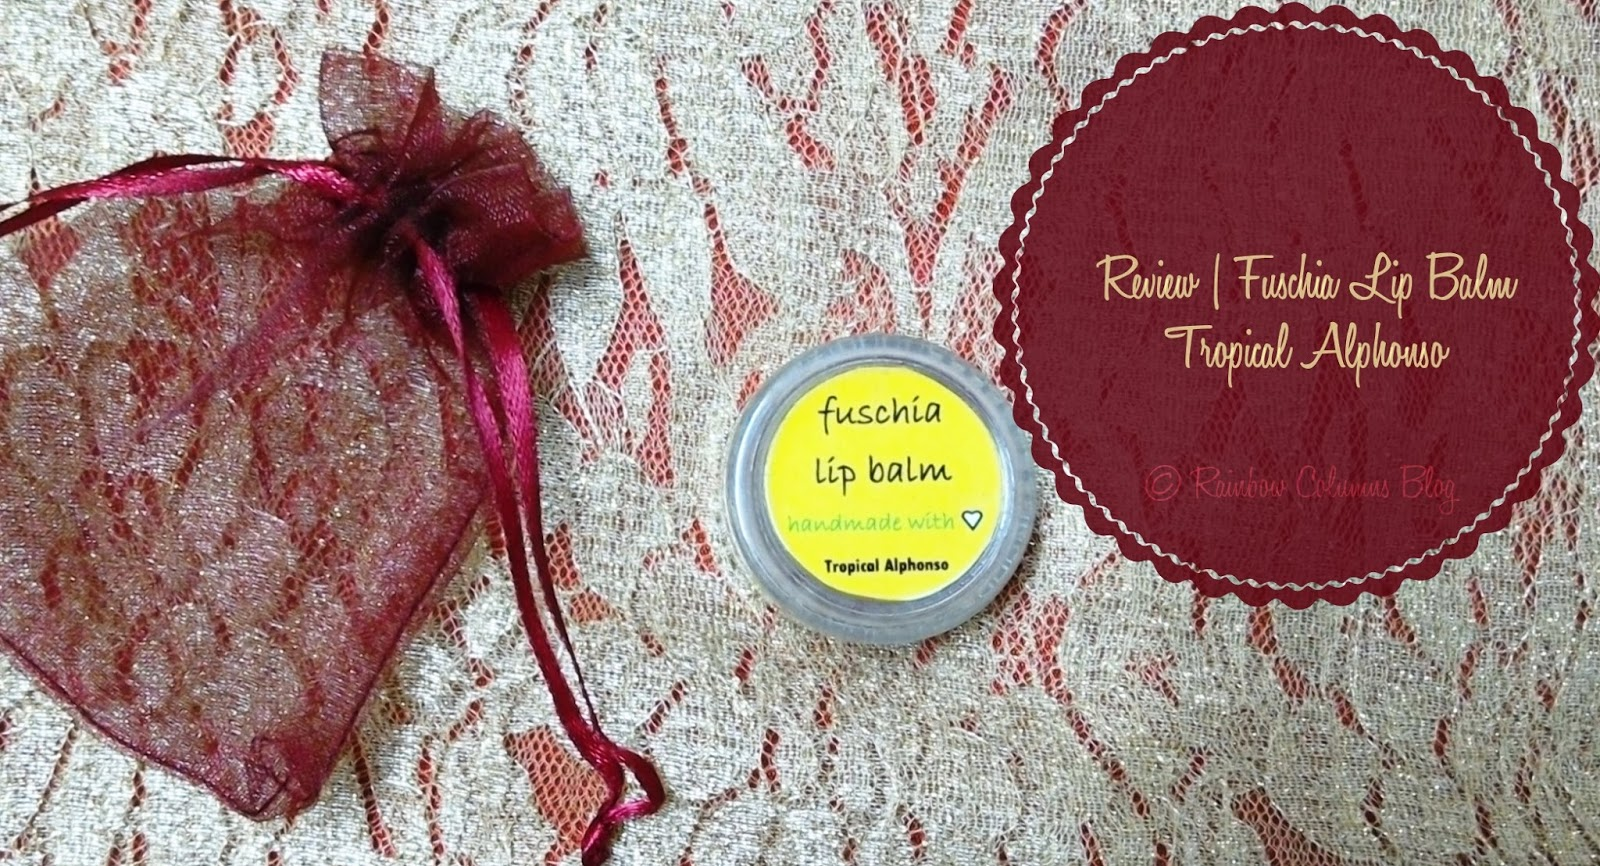 Fuschia Lip Balm - Tropical Alphonso